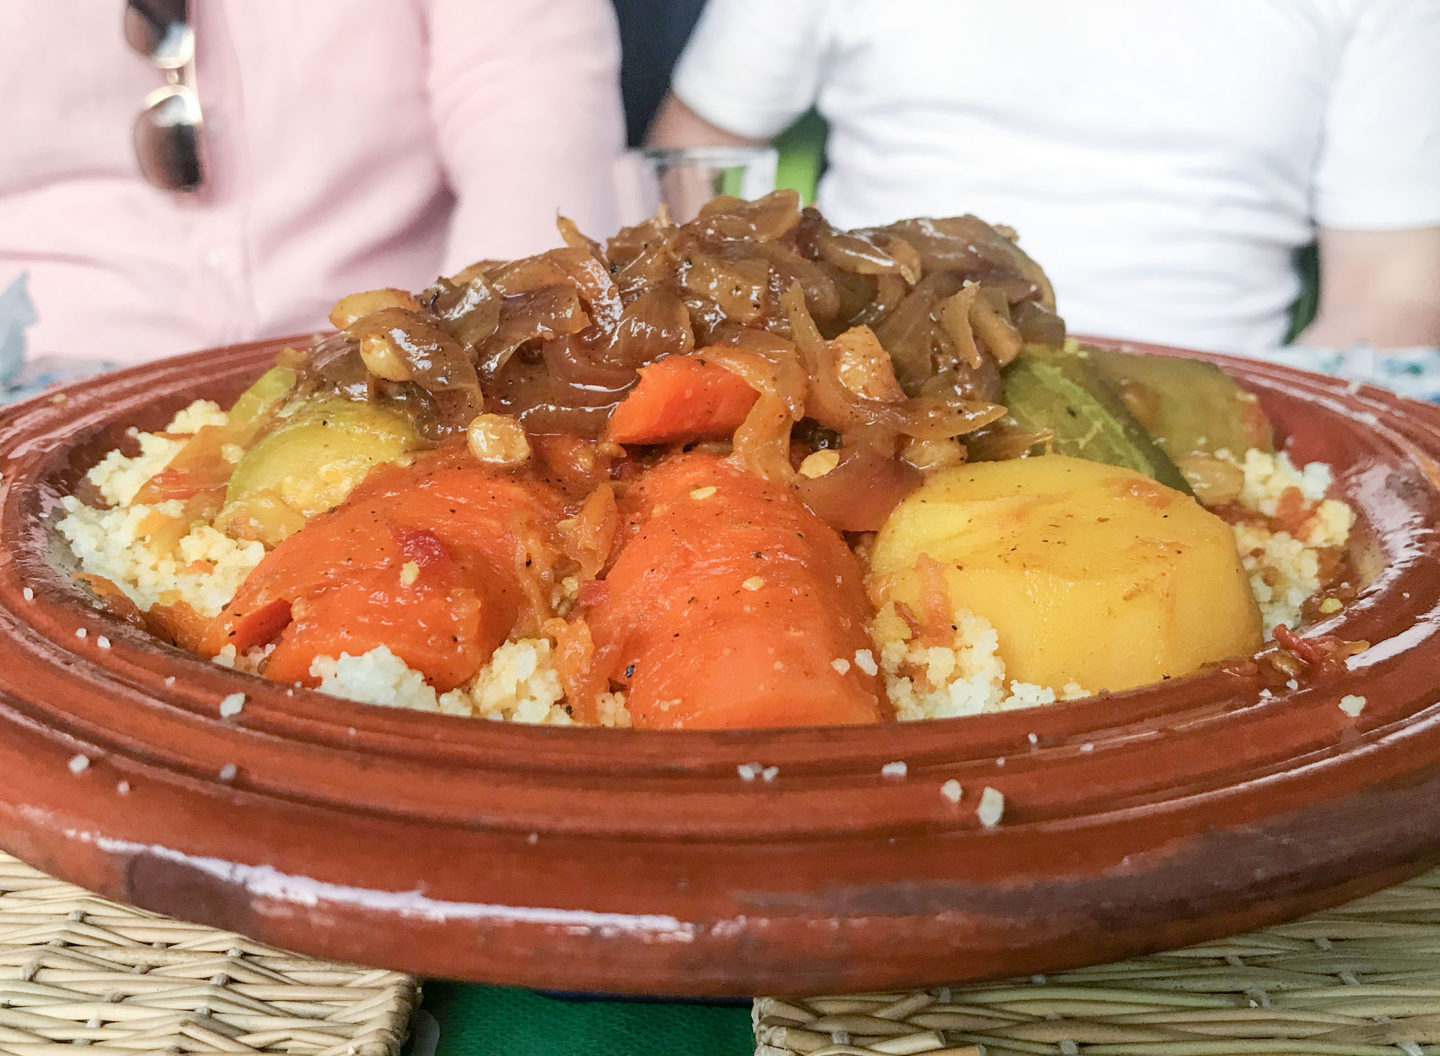 veggie couscous from marrakech food tour